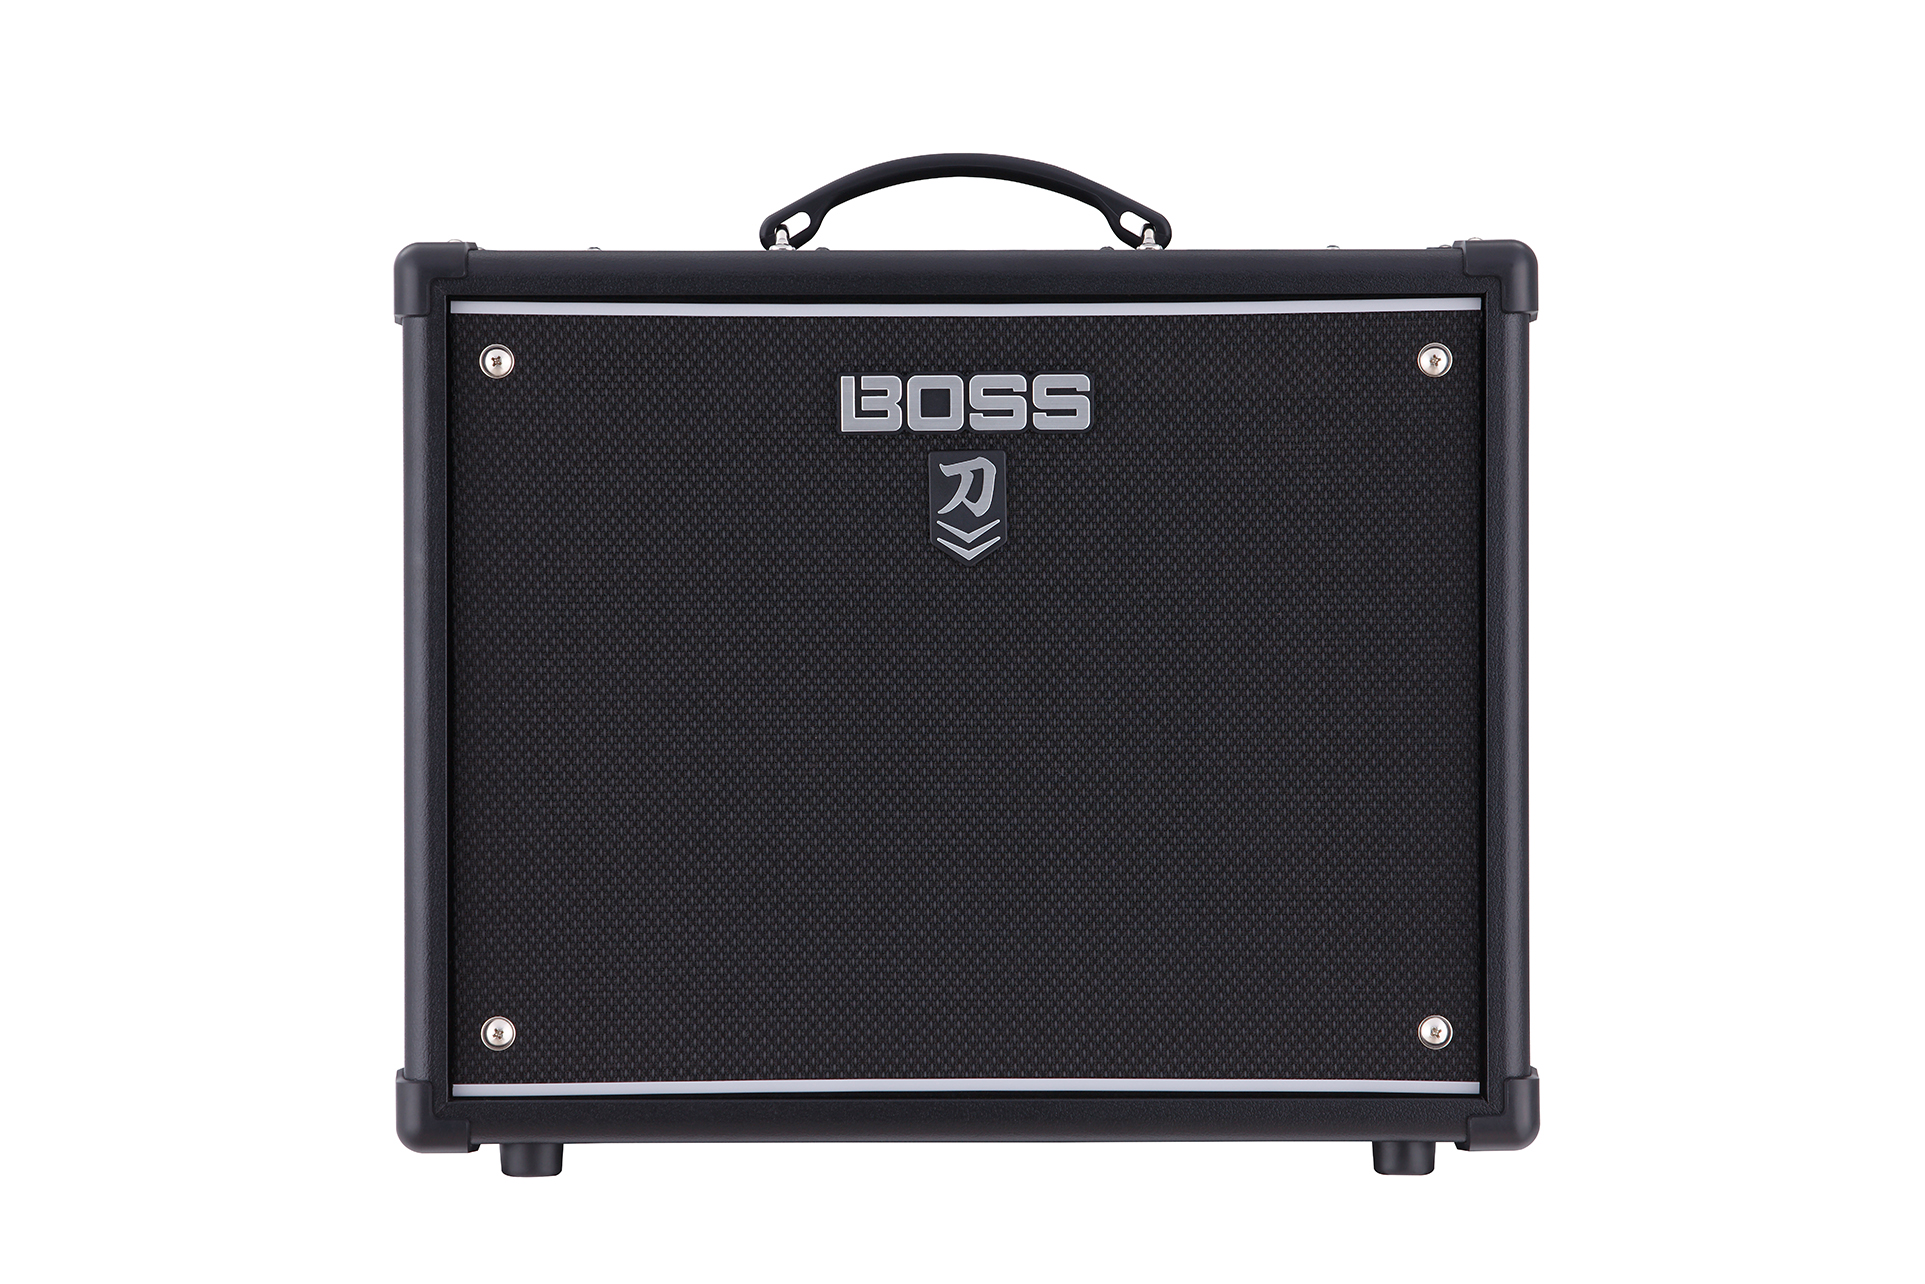 Boss - KTN-50MKII Katana-50 MkII Guitar Amplifier